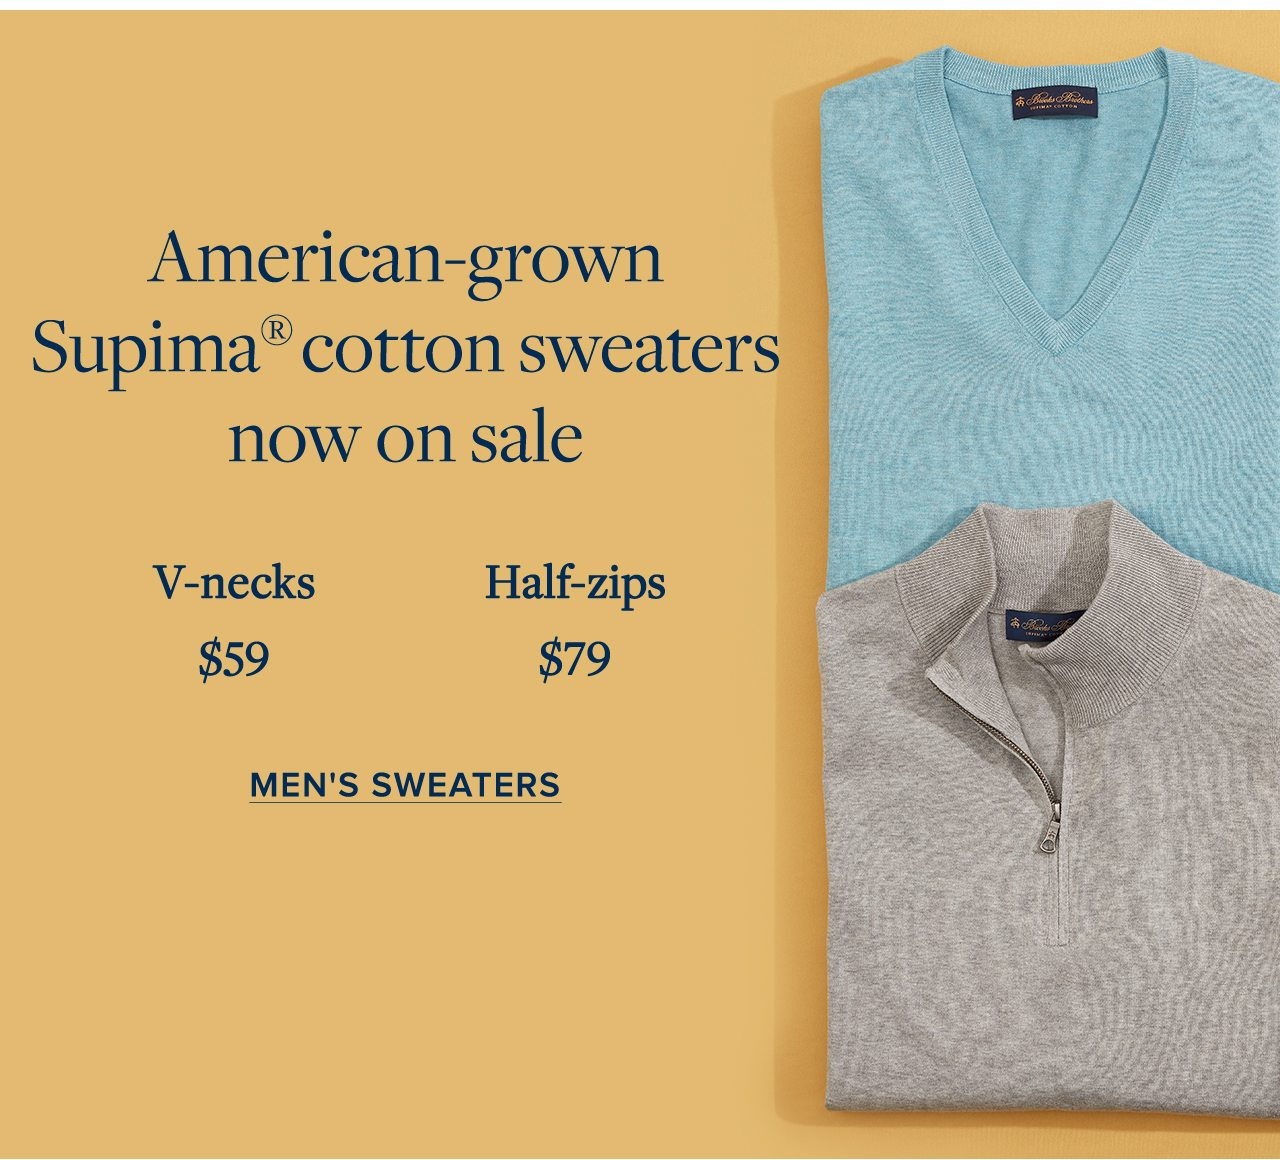 American-grown Supima cotton sweaters now on sale. Men's Sweaters